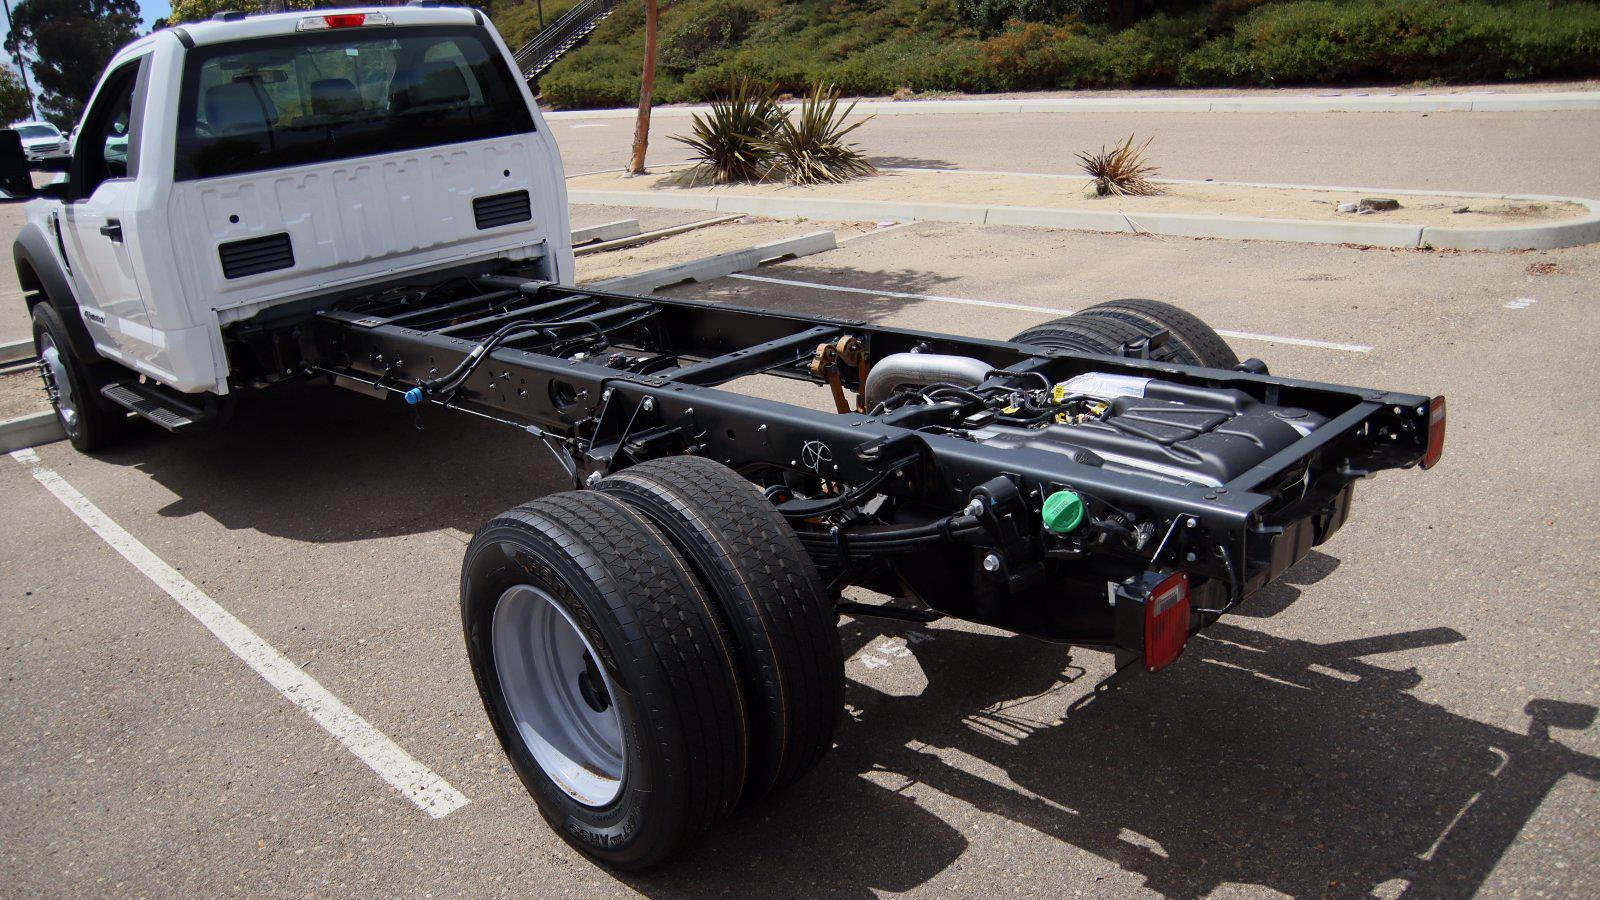 2021 Ford F-600 Regular Cab DRW 4x2, Cab Chassis #215938 - photo 1